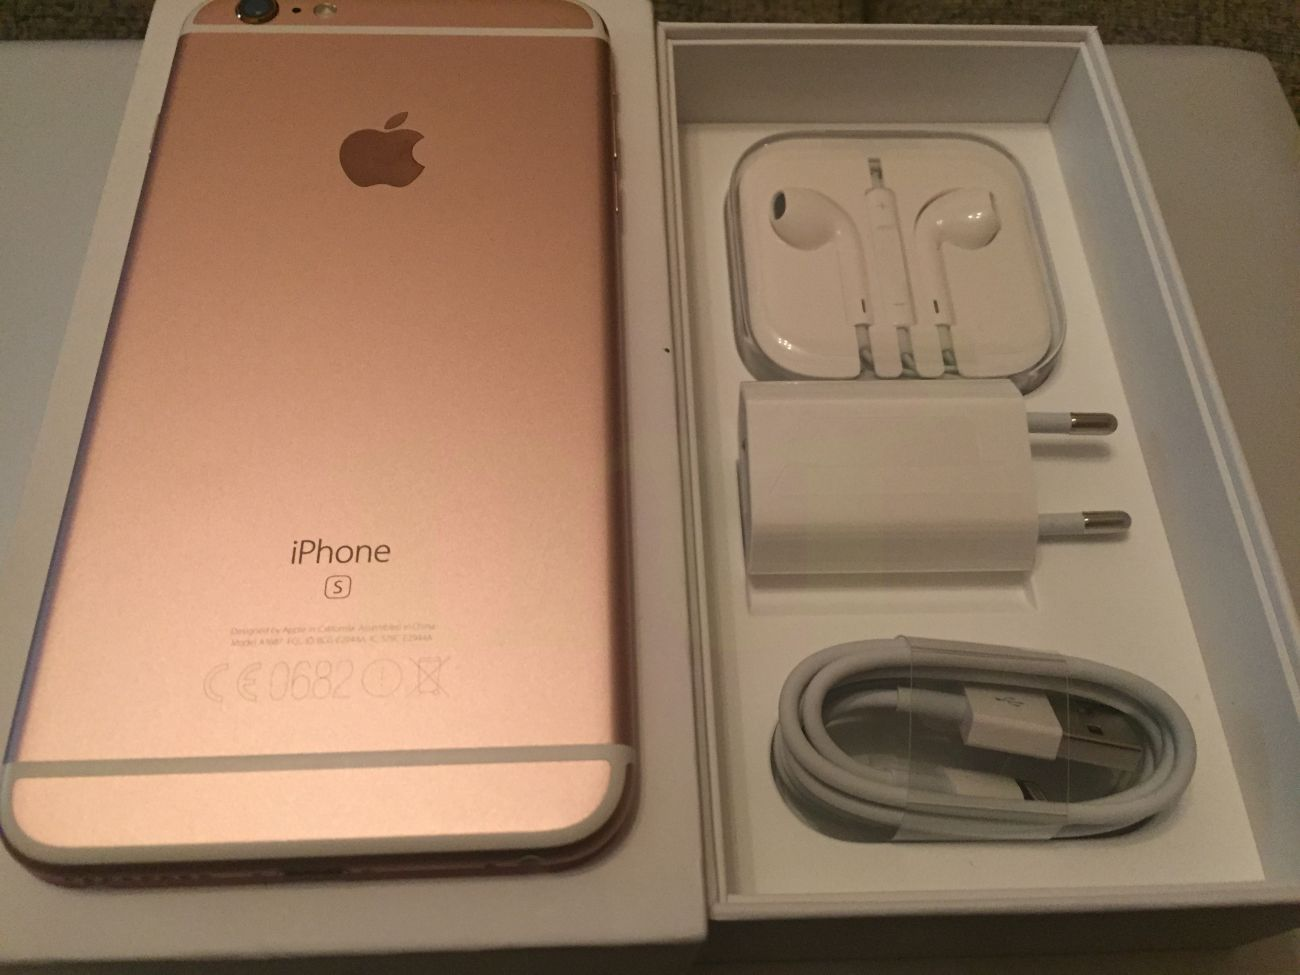 Comprar iphone 6s plus 16 gb pro rosa segunda mano